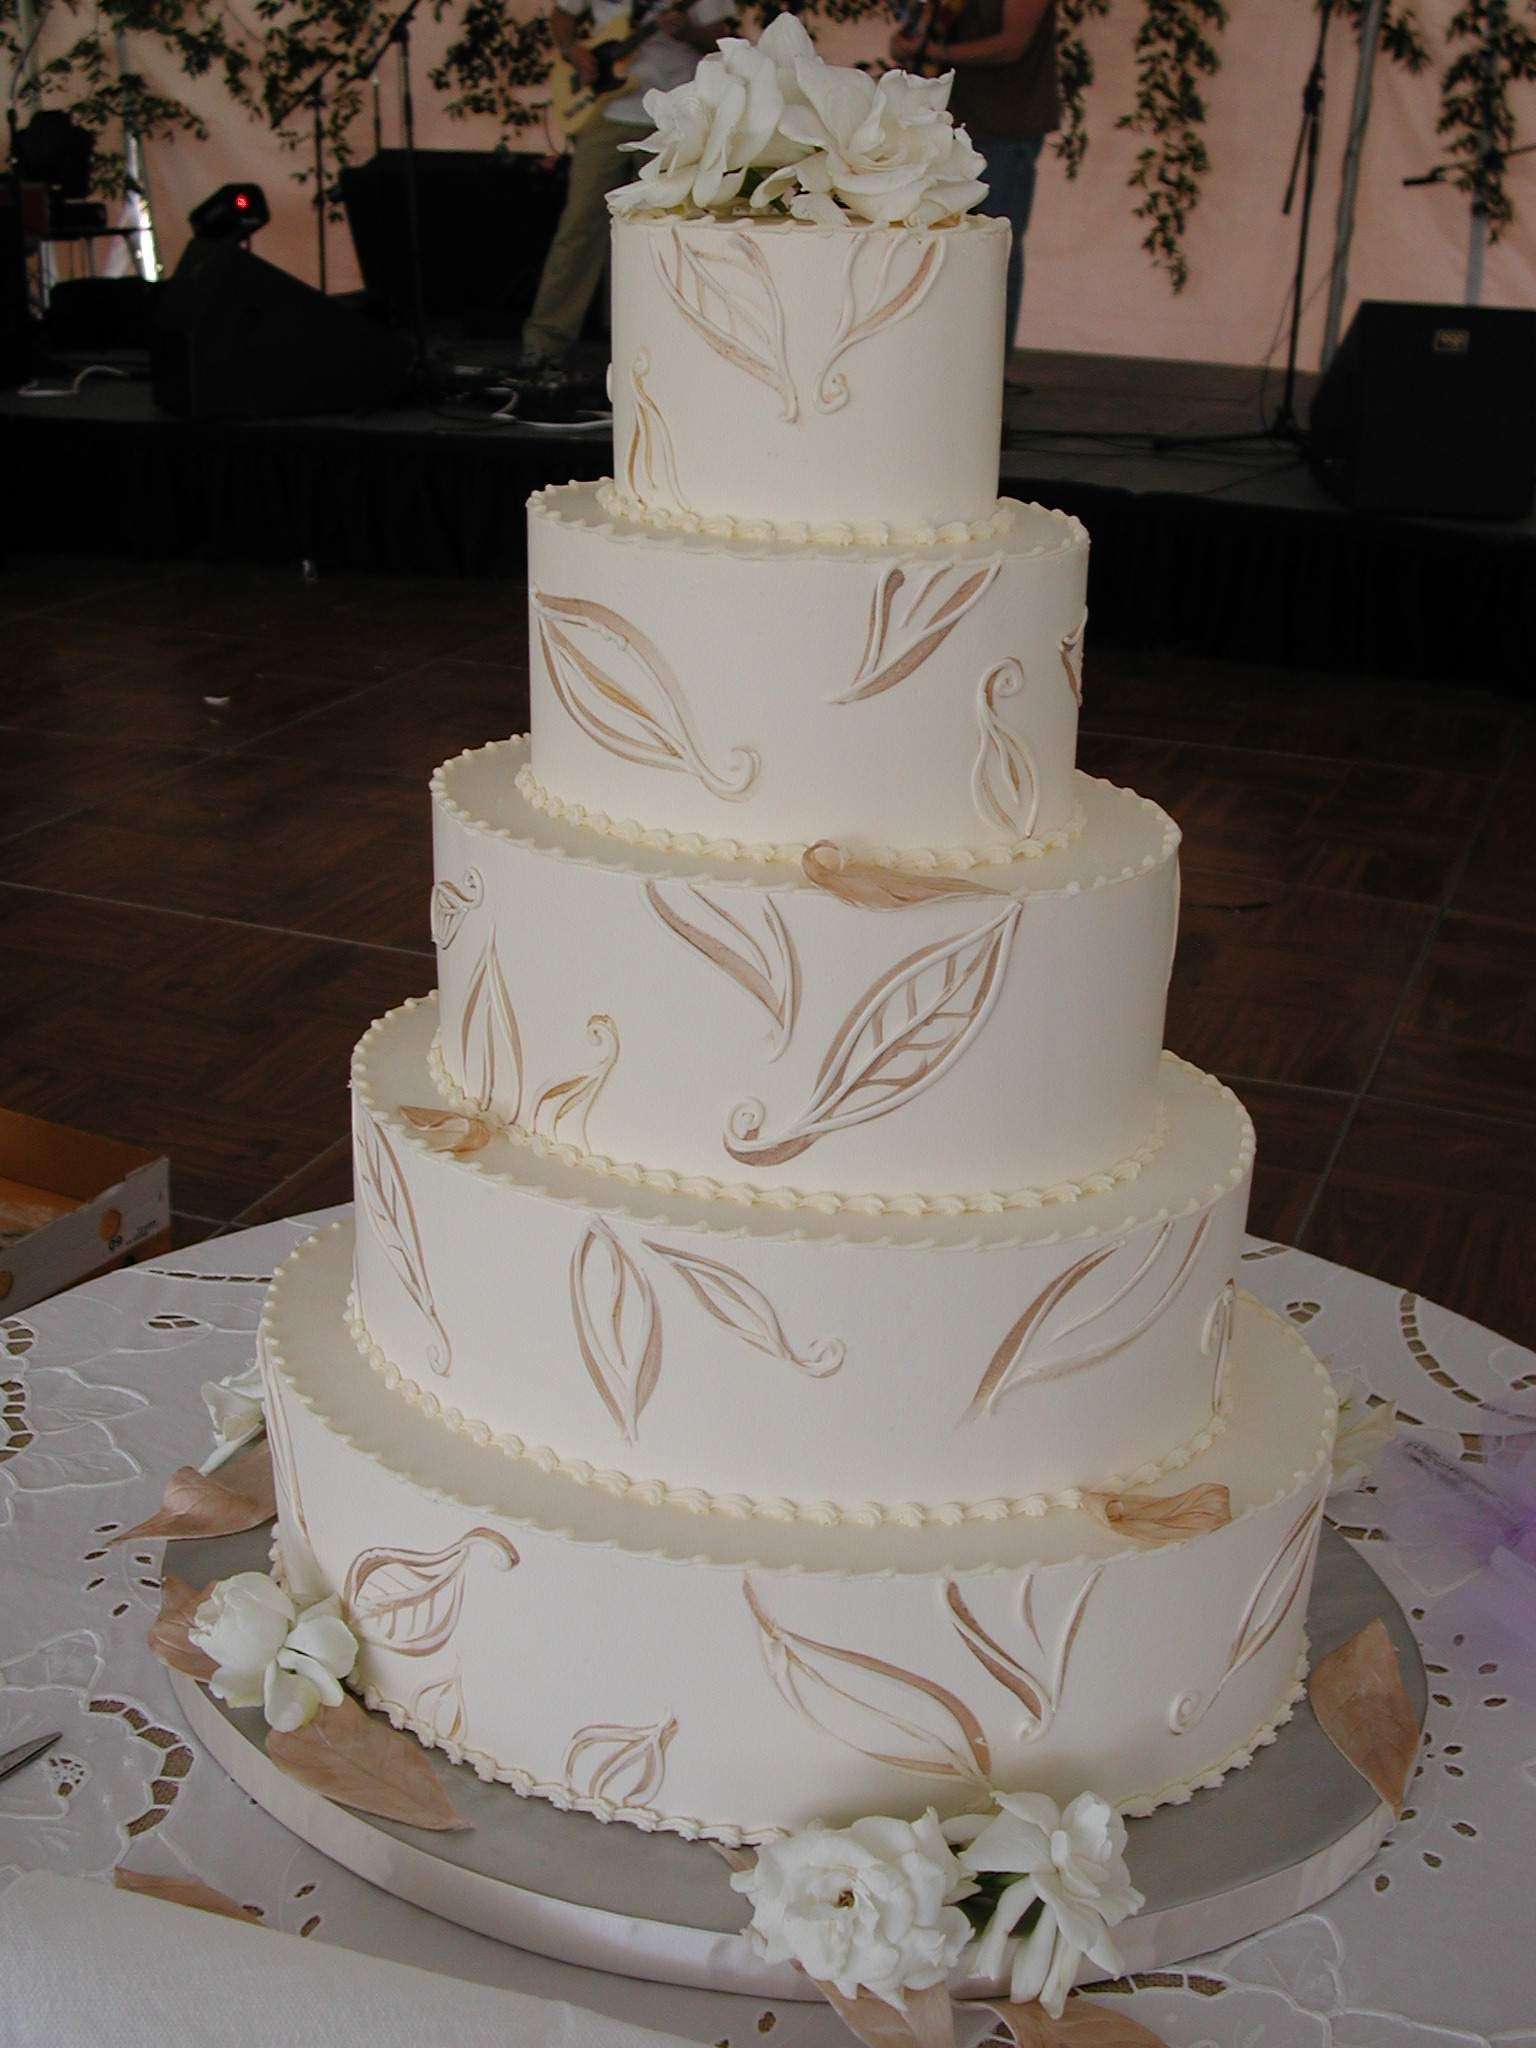 Magpies Bakery Knoxville  TN Oval buttercream wedding cake with     Magpies Bakery Knoxville  TN Oval buttercream wedding cake with painted  fall decor   knoxville  love  wedding  oval  butter